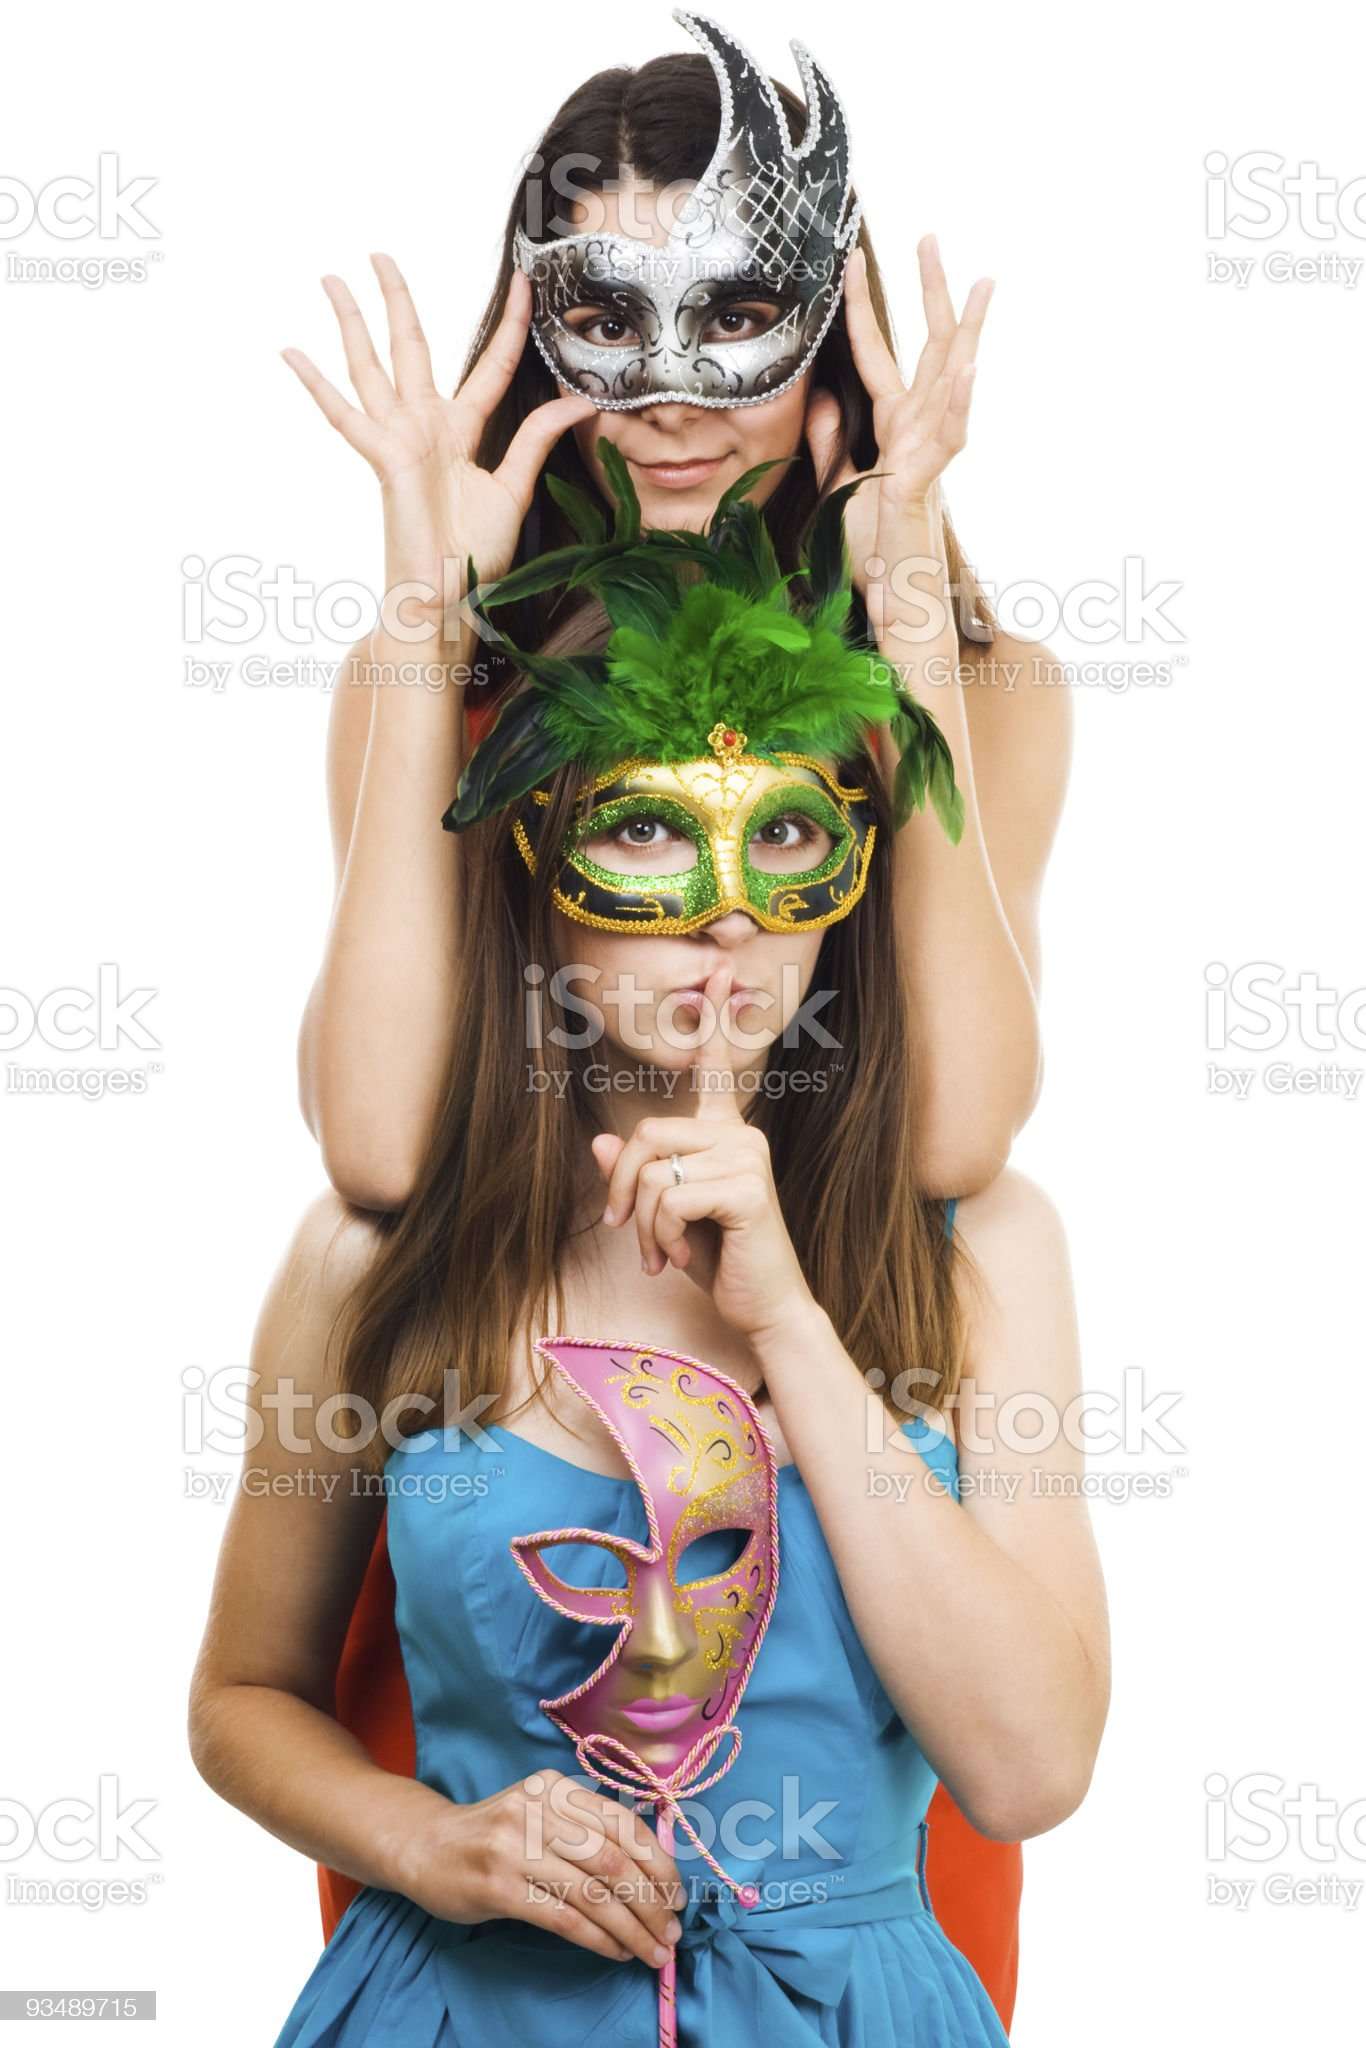 Two young women in masks make hush sign royalty-free stock photo